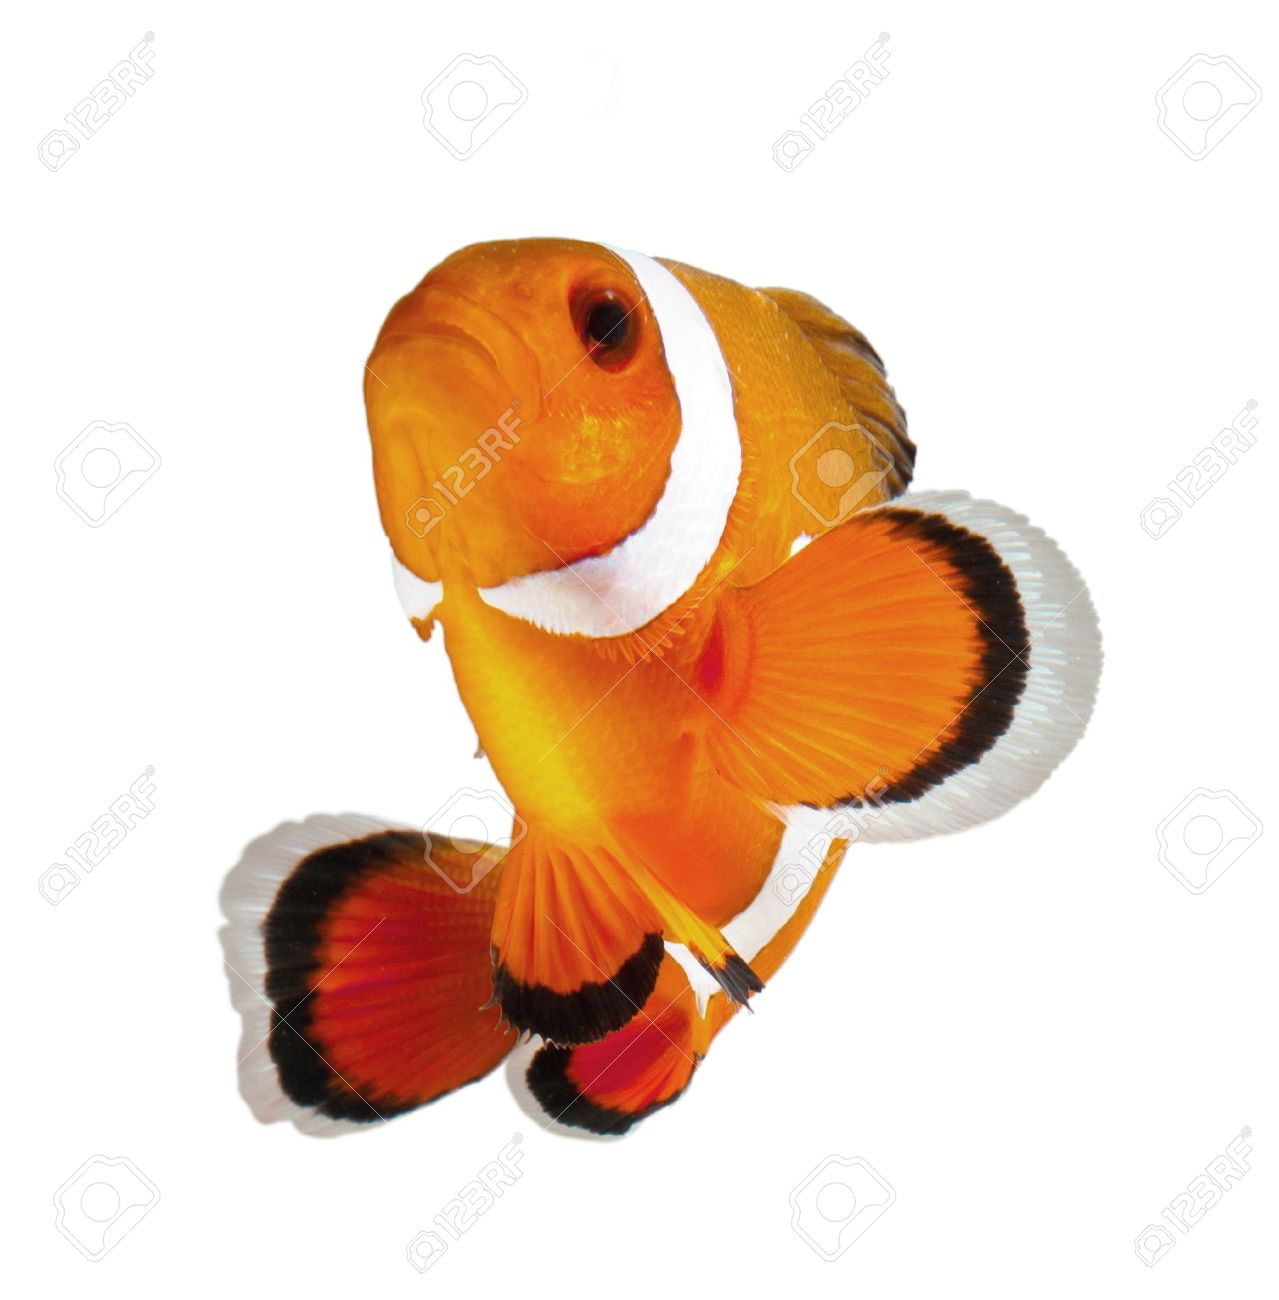 clown fish isolated on white background Stock Photo - 11108047